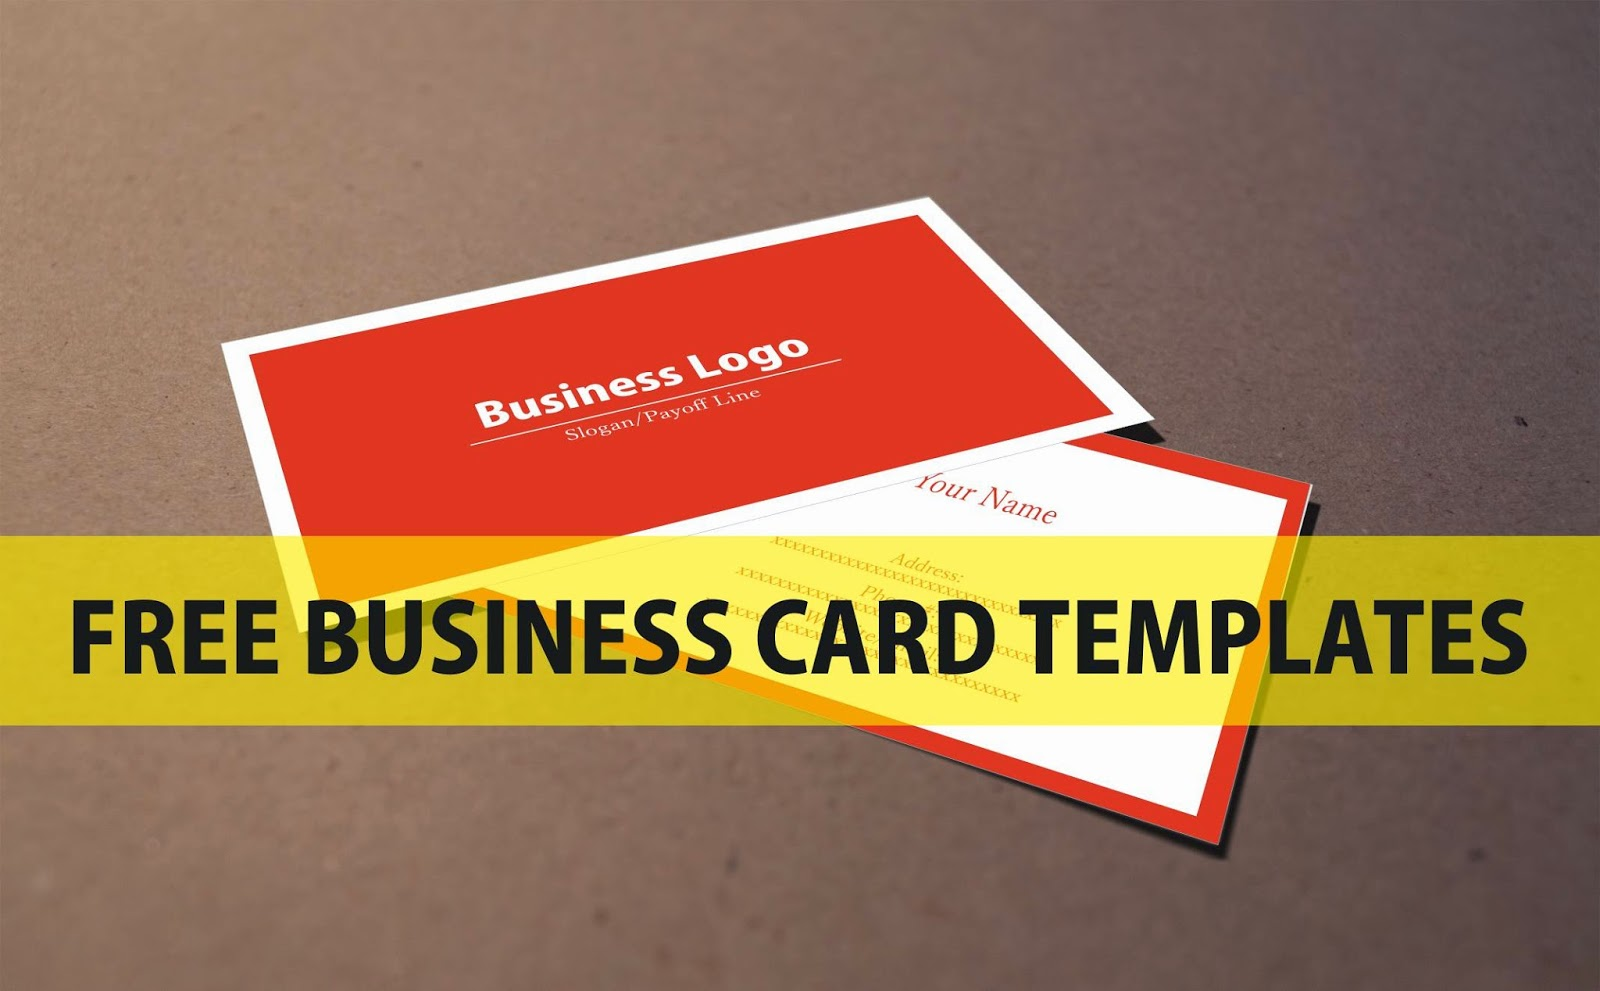 Free business card template download coreldraw file a graphic free business card template download coreldraw file fbccfo Image collections